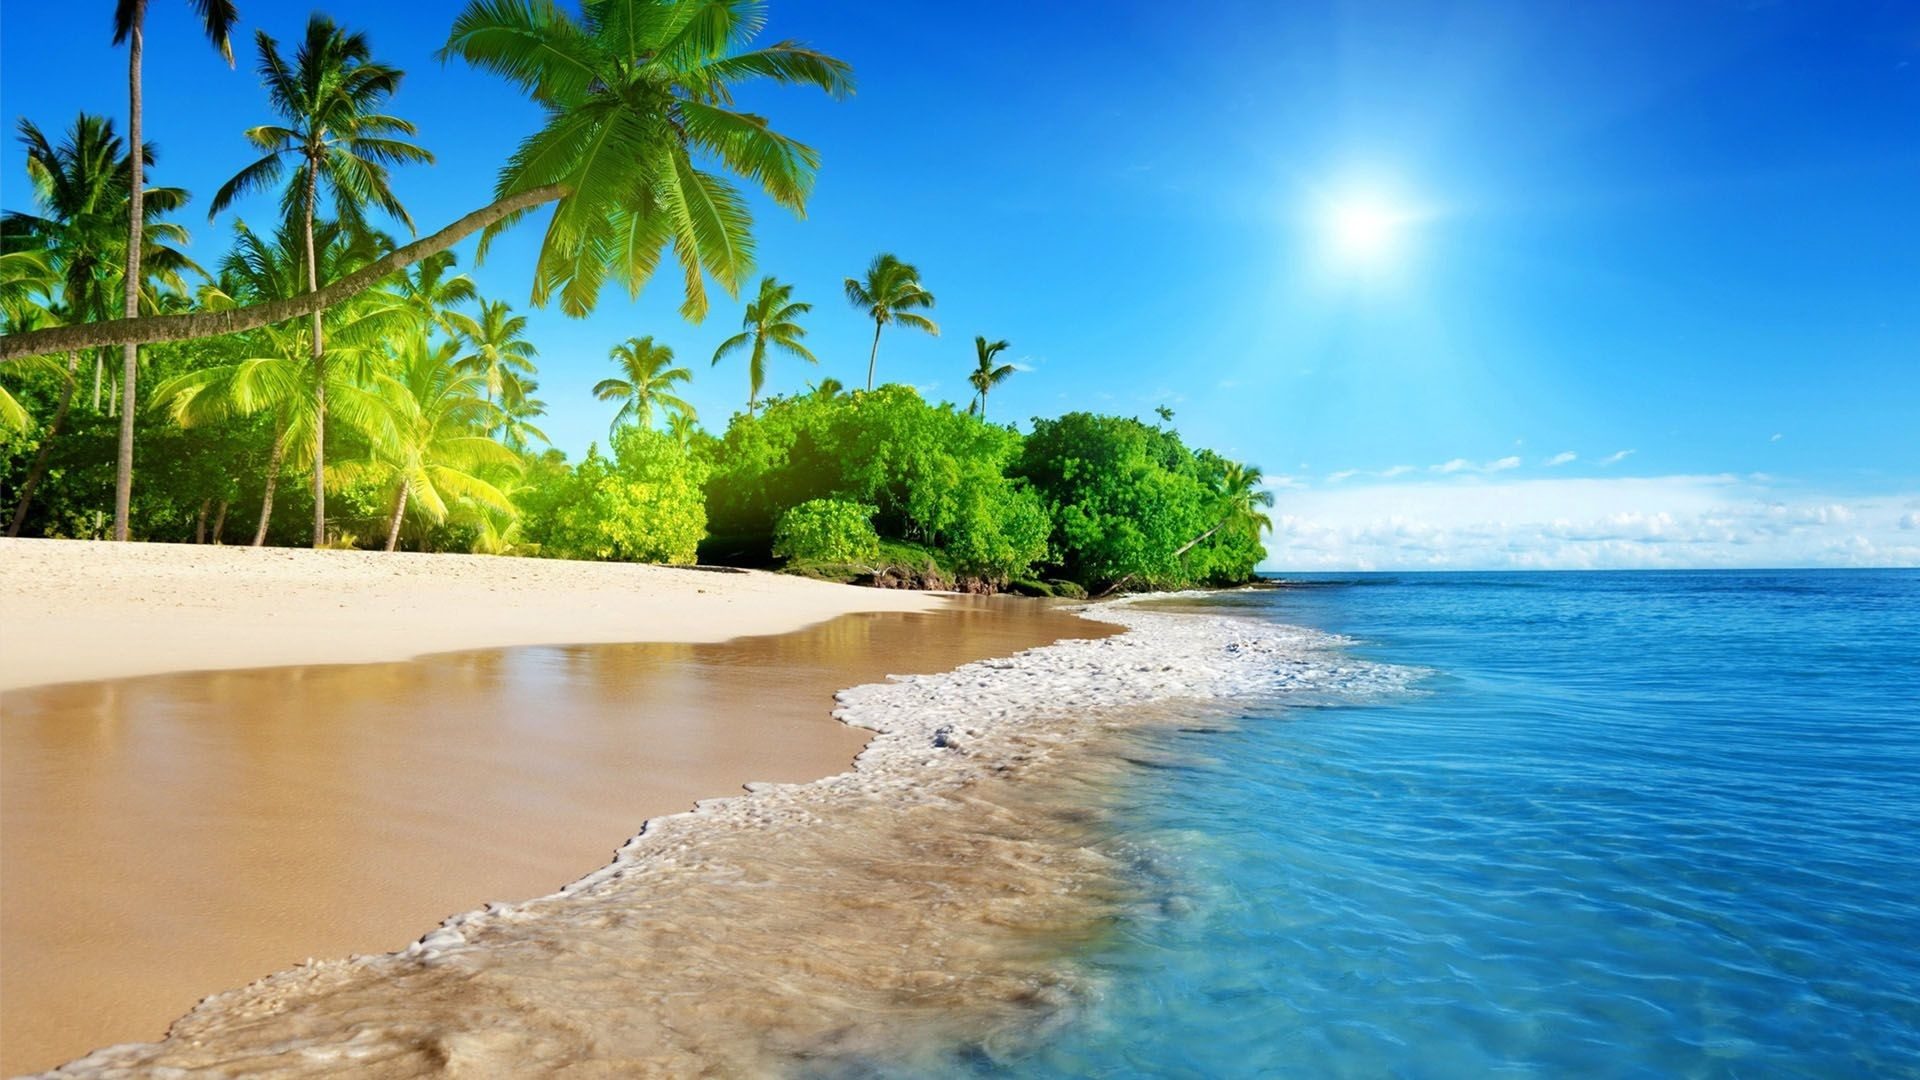 1920x1080 Hawaiian Beach Wallpaper, 45 PC Hawaiian Beach Backgrounds in .